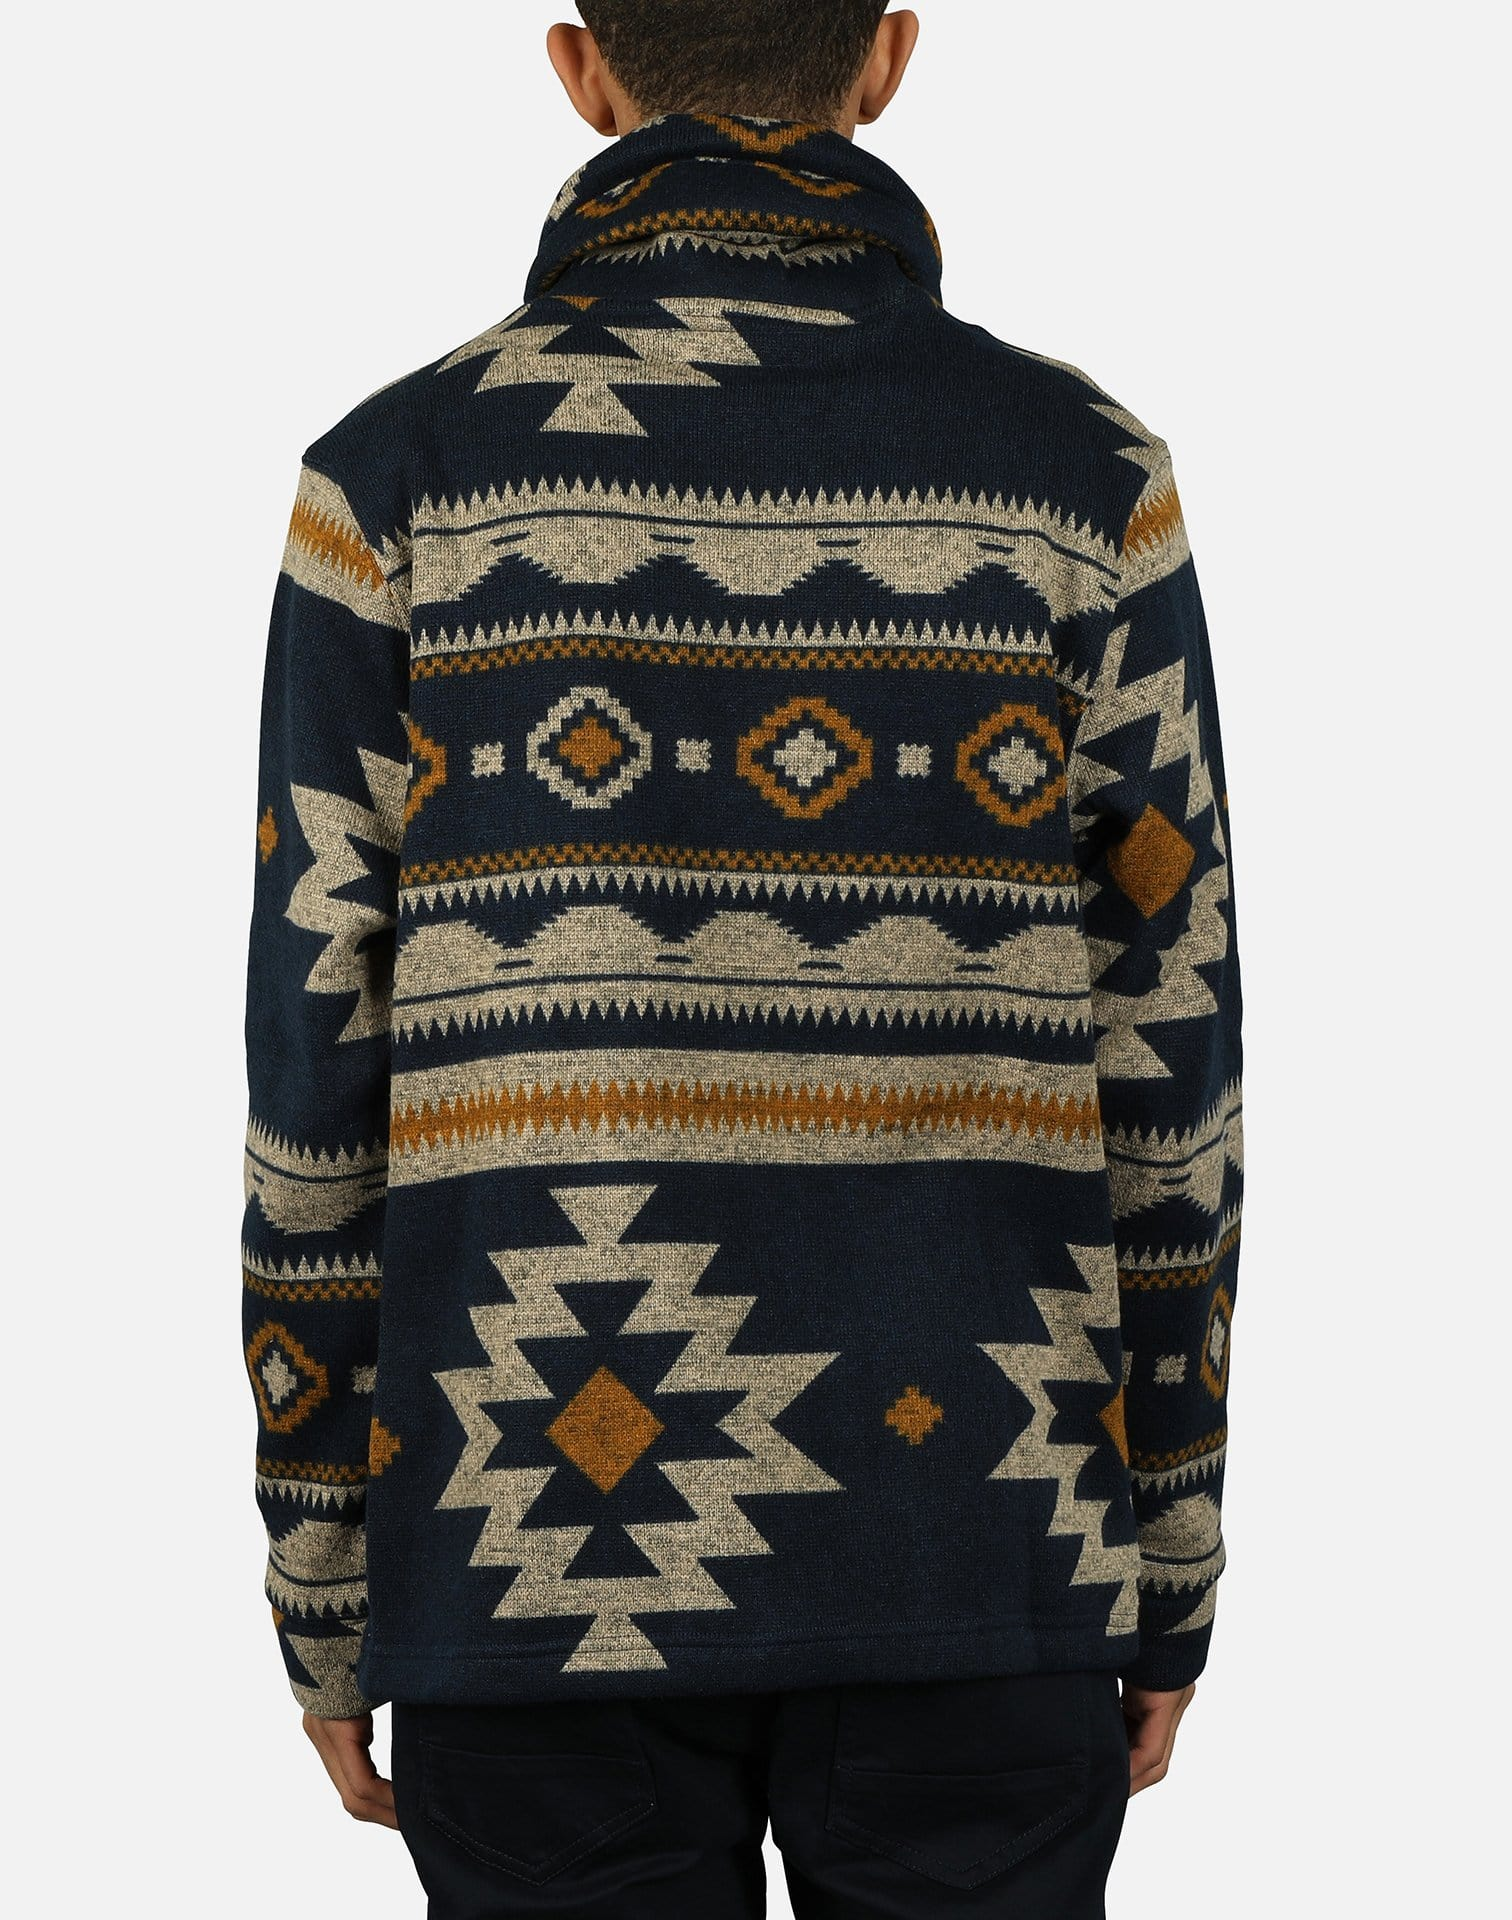 Levi's Men's Kuna Knit Fleece Sweater